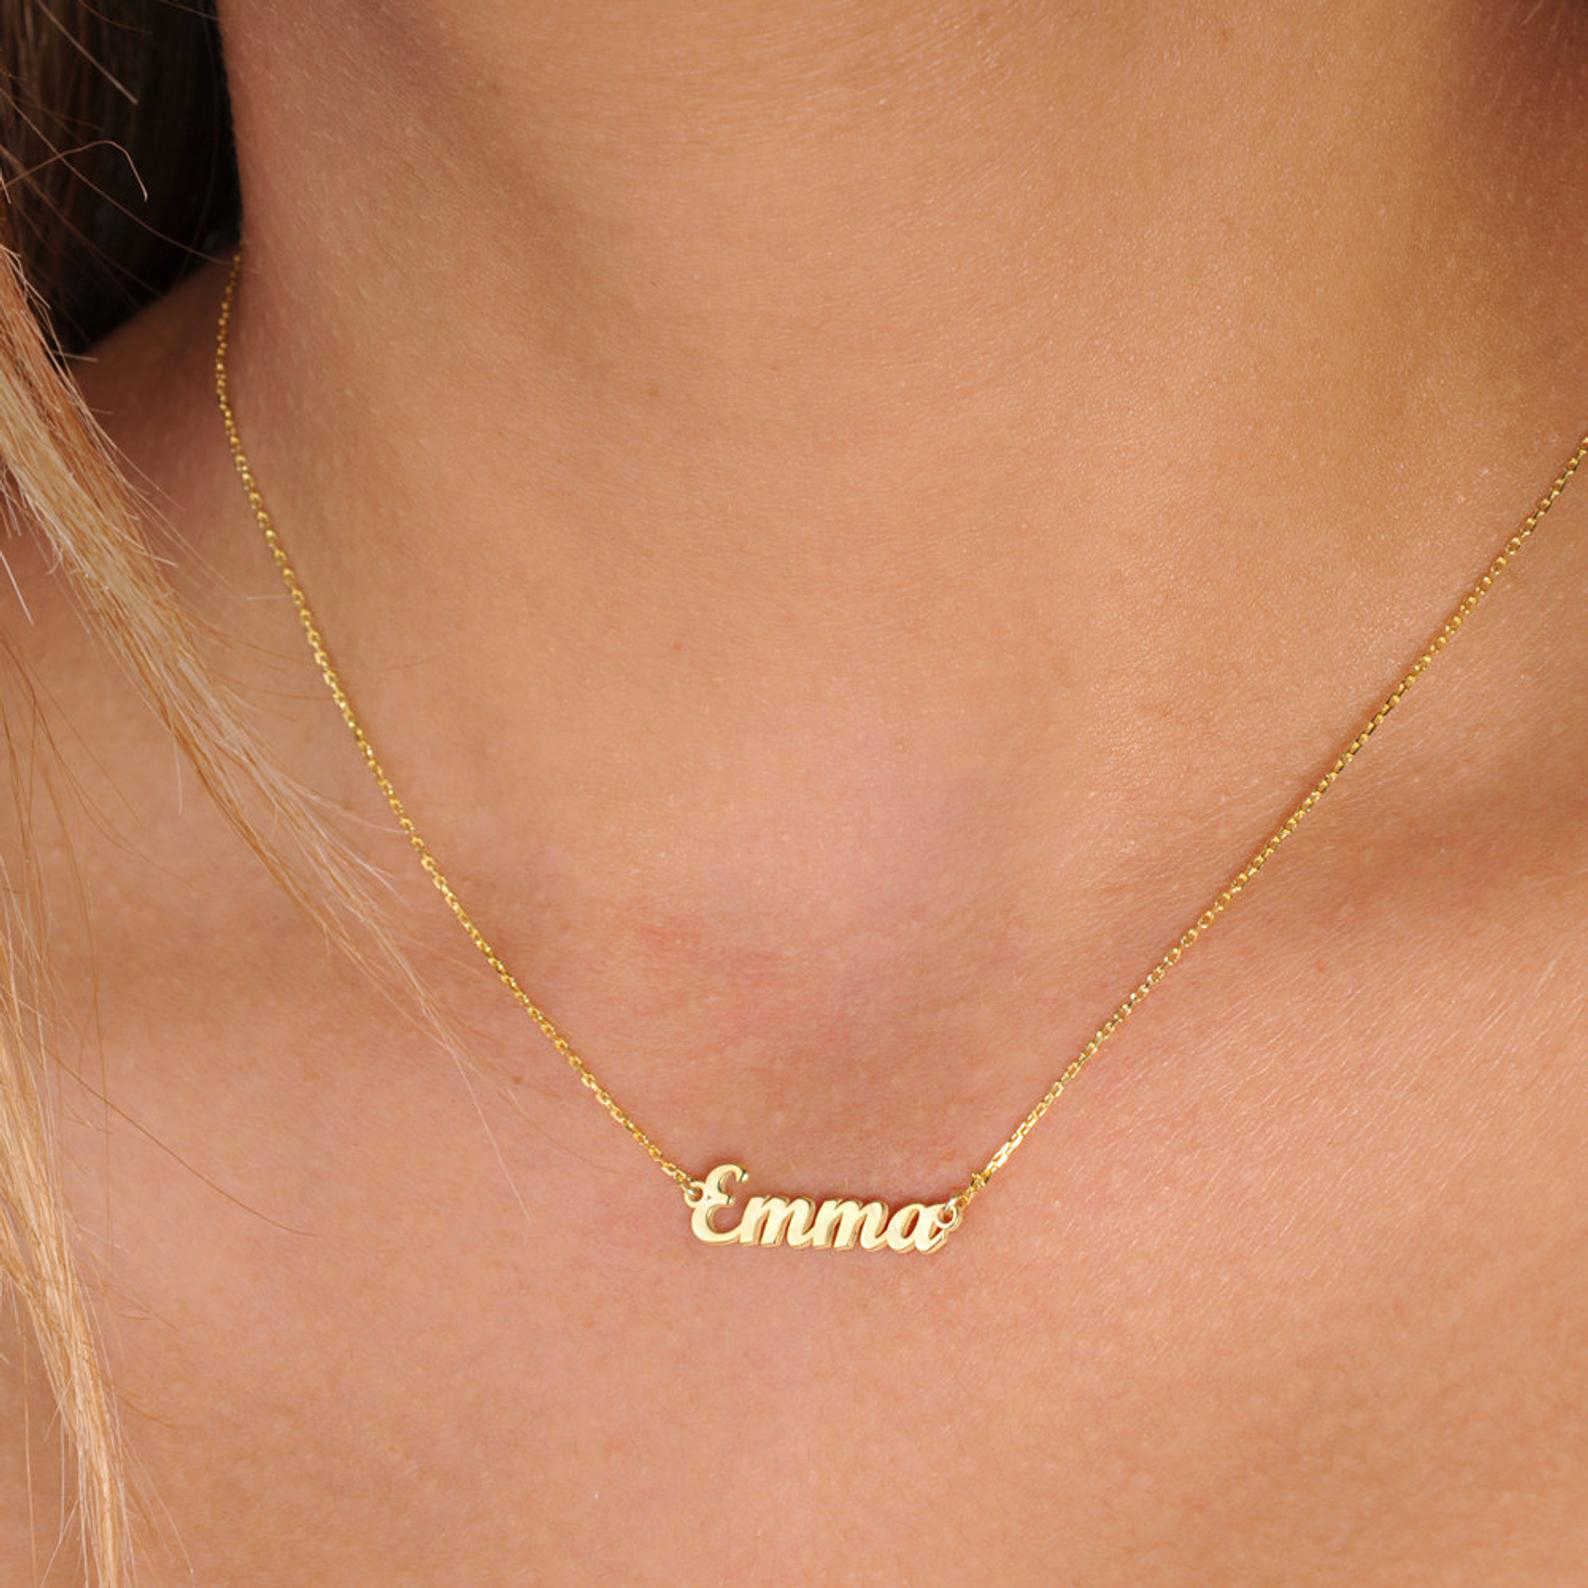 Tiny Chain Name Necklace